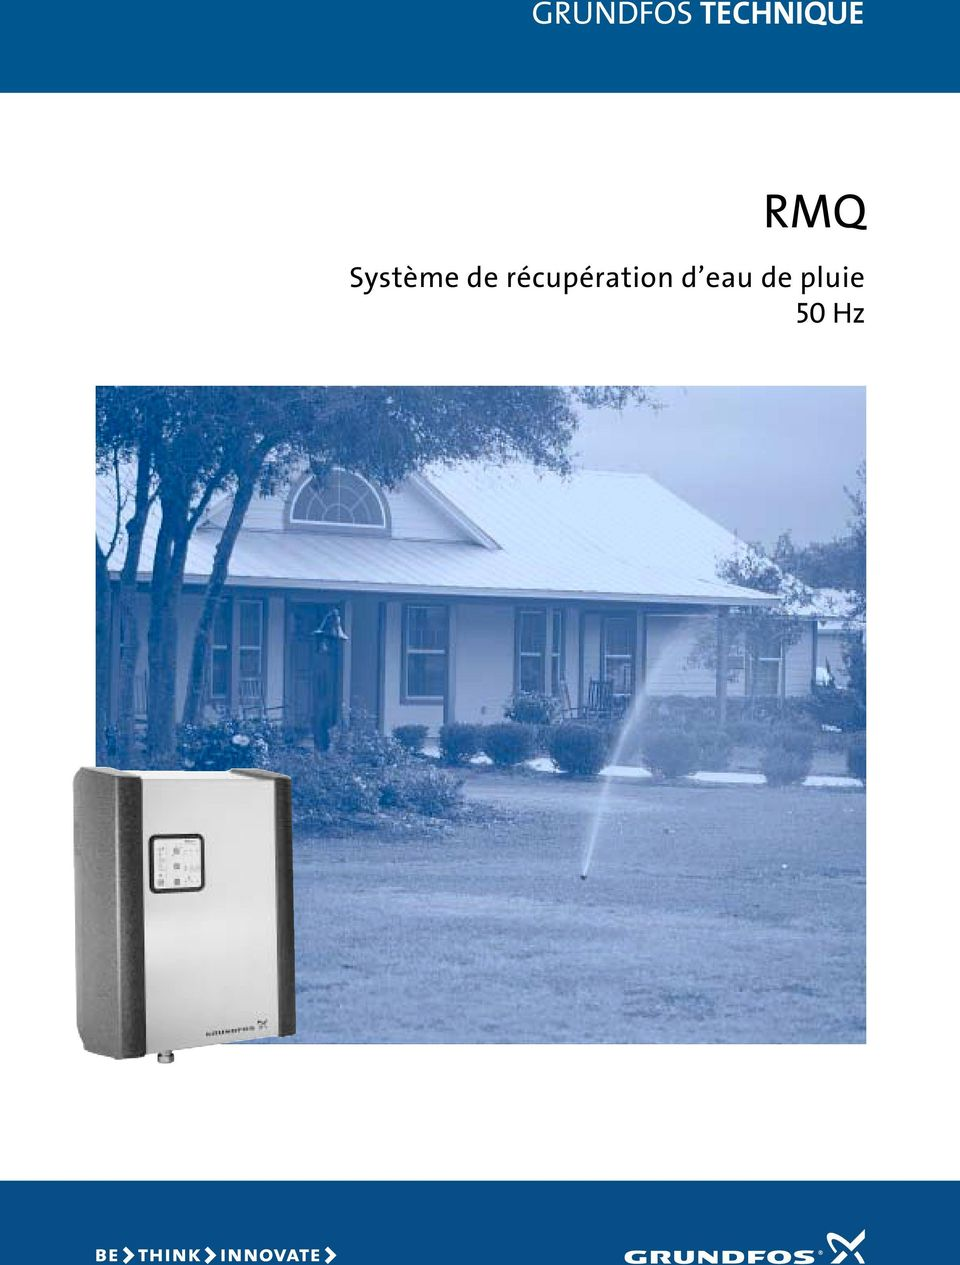 grundfos technique rmq syst me de r cup ration d eau de pluie 50 hz pdf. Black Bedroom Furniture Sets. Home Design Ideas